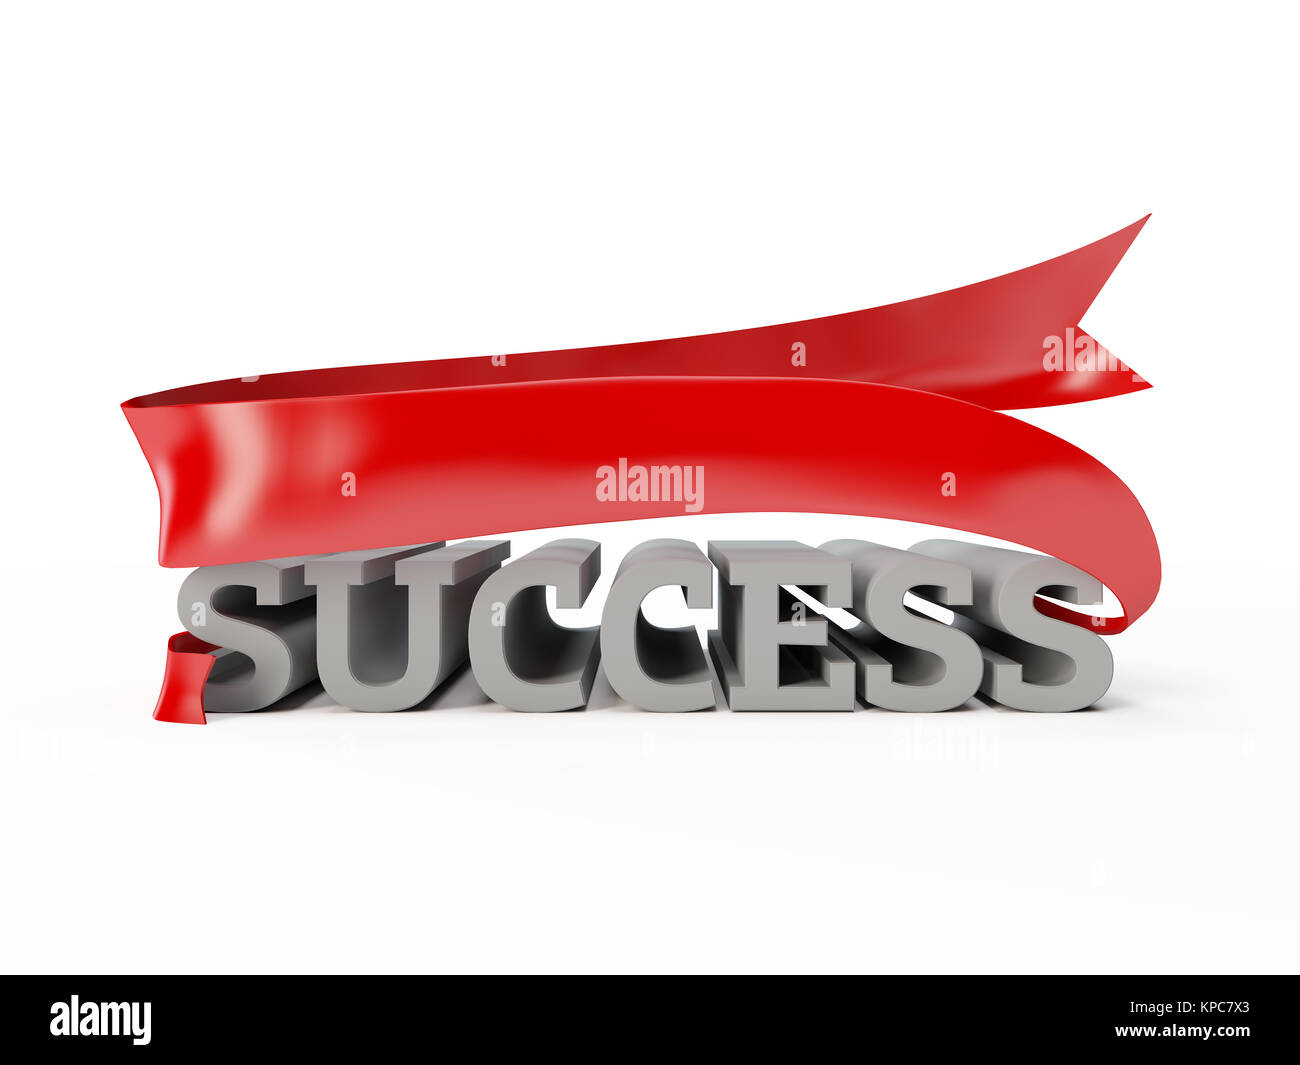 illustration of success, luck, achievement - Stock Image